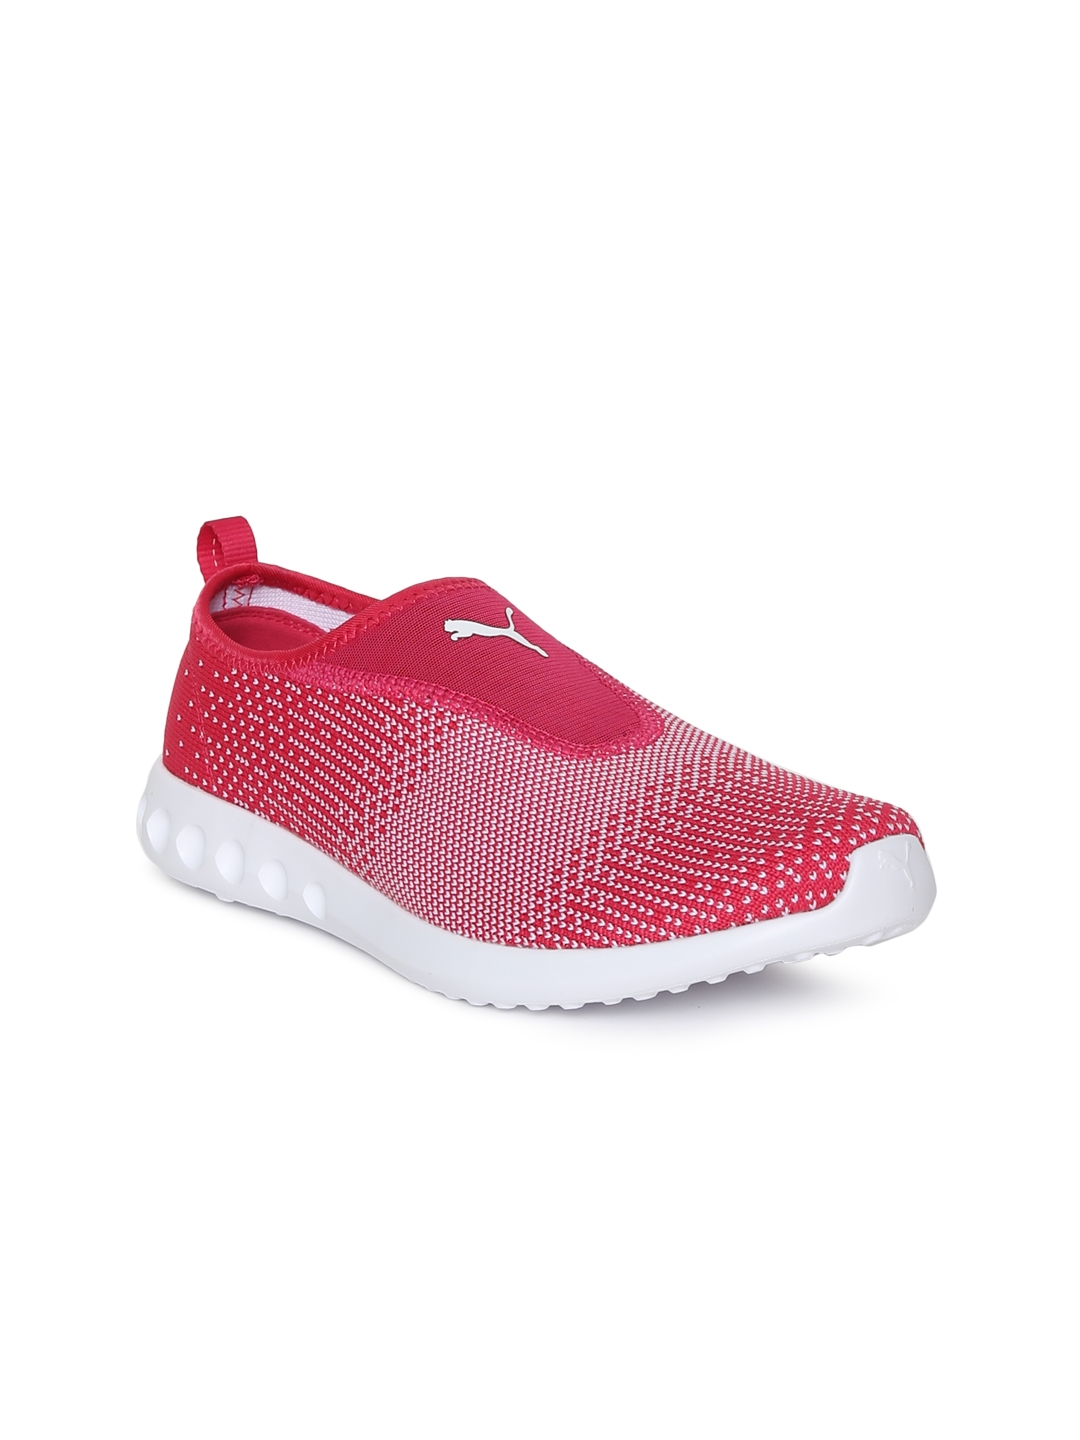 Buy Puma Women Pink Carson 2 Running Slip Ons - Sports Shoes for ... 6c75c63dd